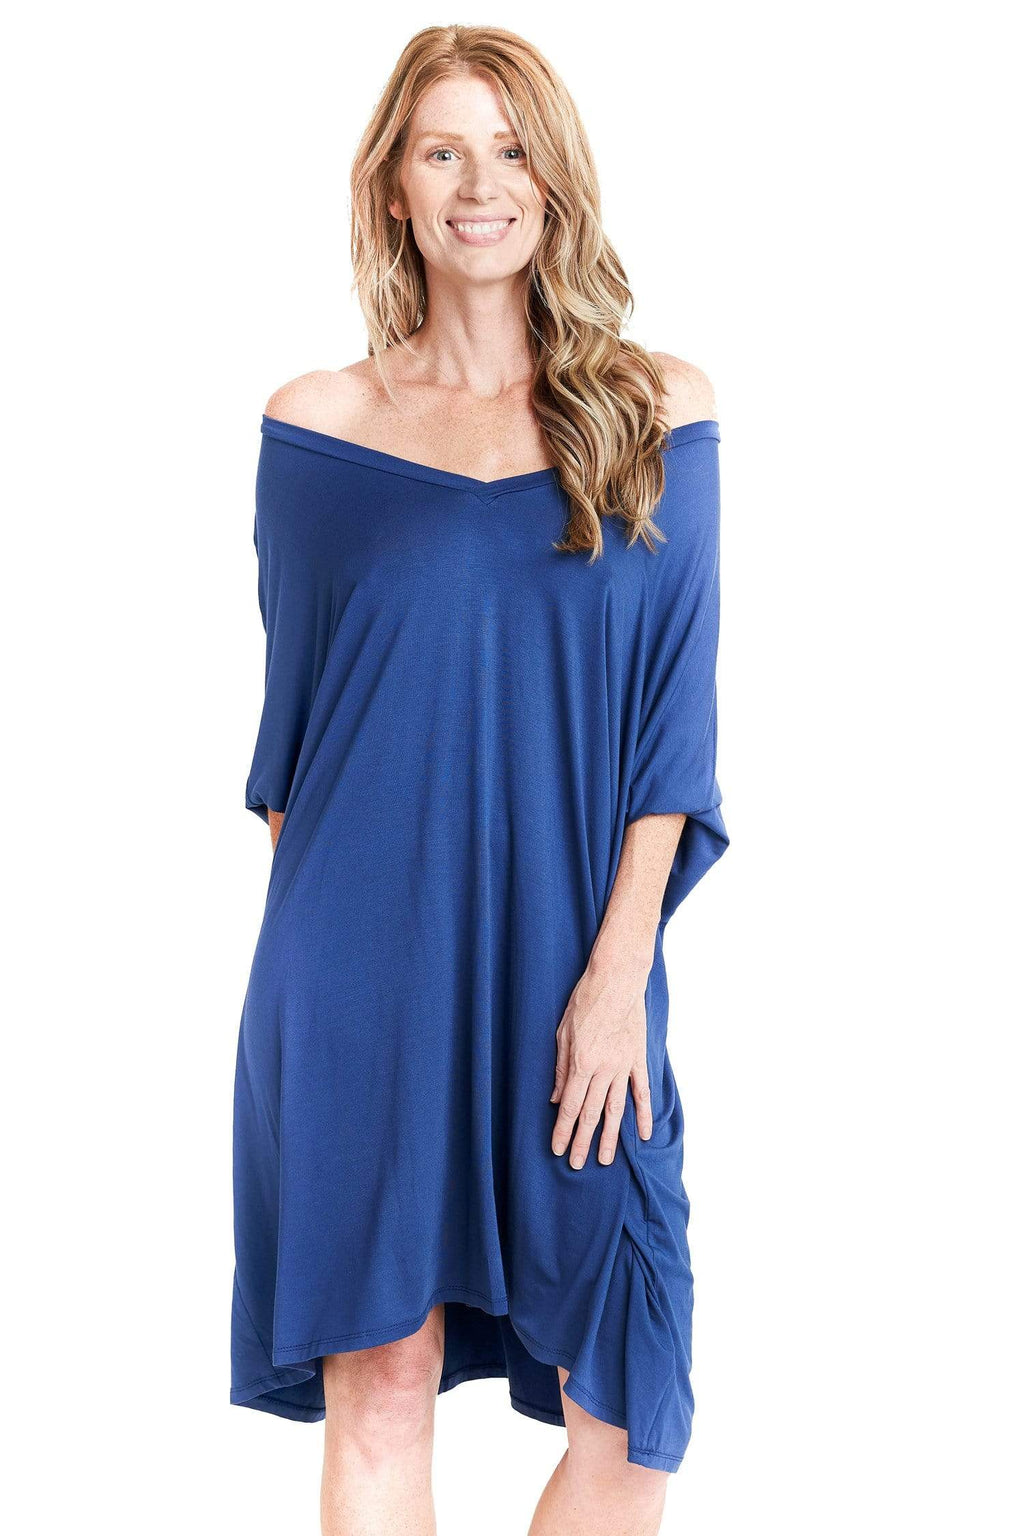 shop-sofia Maxine Denim Dress Sofia Collections Italian Silk Linen Satin